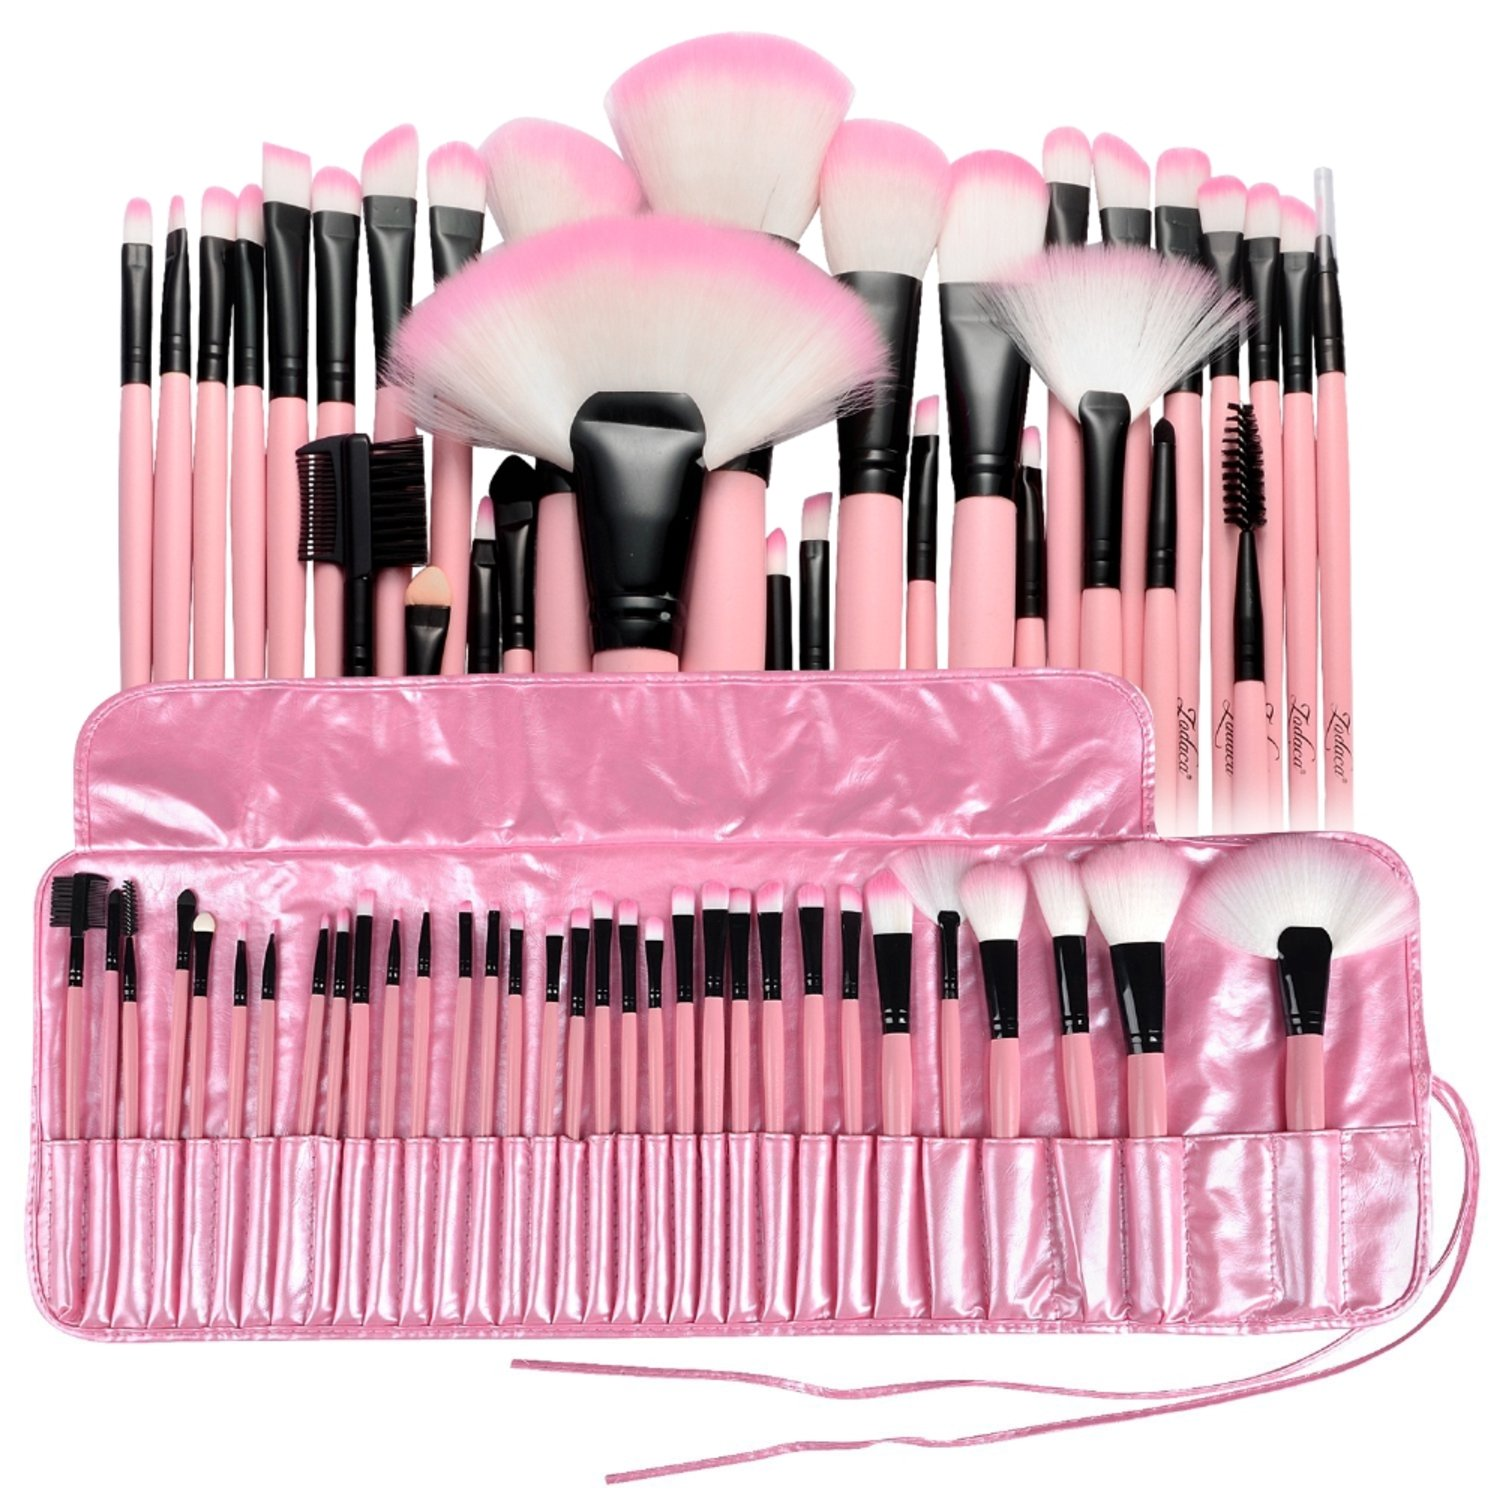 Zodaca 32-Piece Set Professional Cosmetic Makeup Brushes with Pouch Bag, Pink eForCity